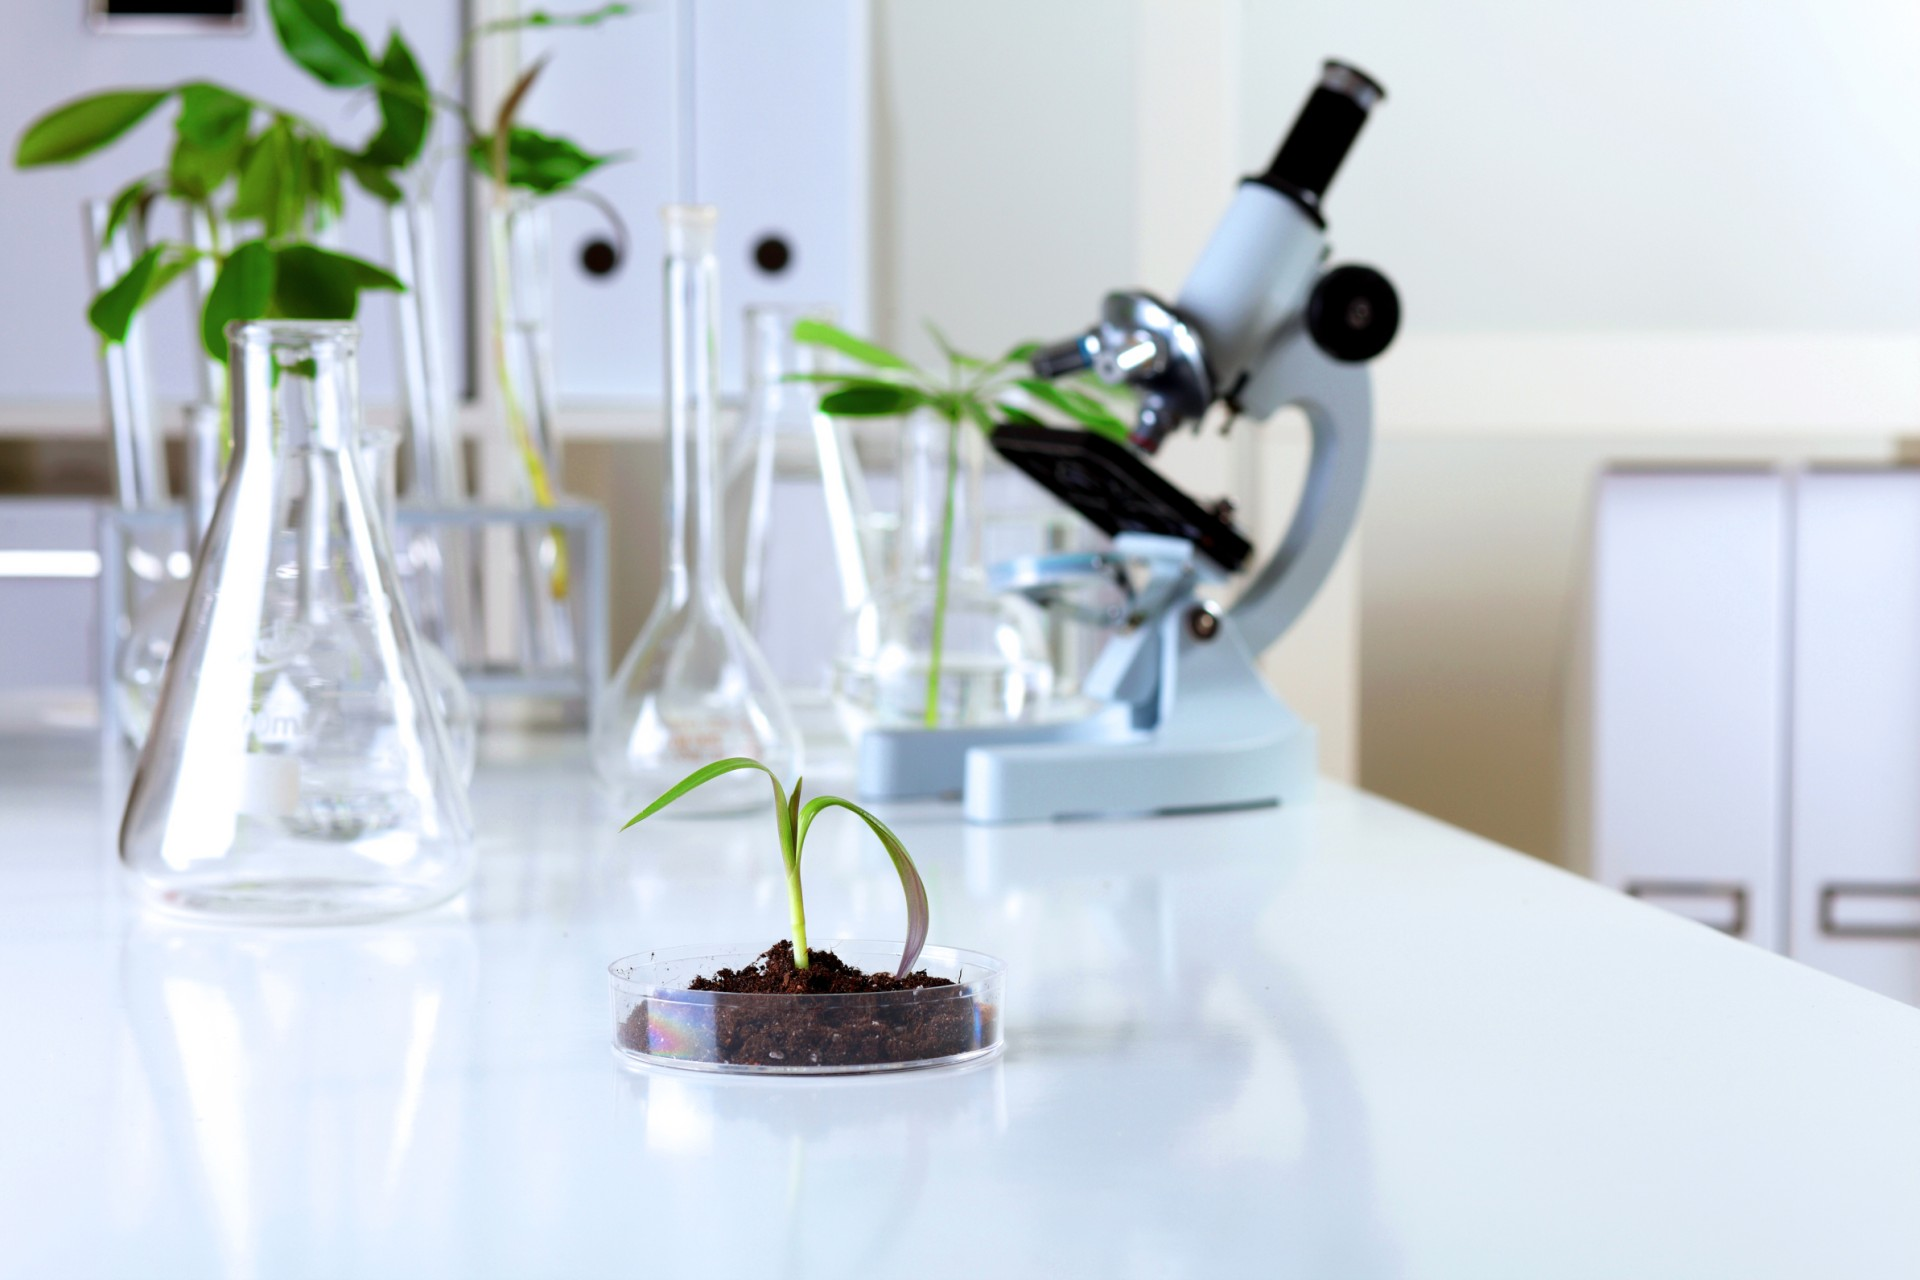 Kozzi-green-plants-in-biology-laborotary-2387-X-1591